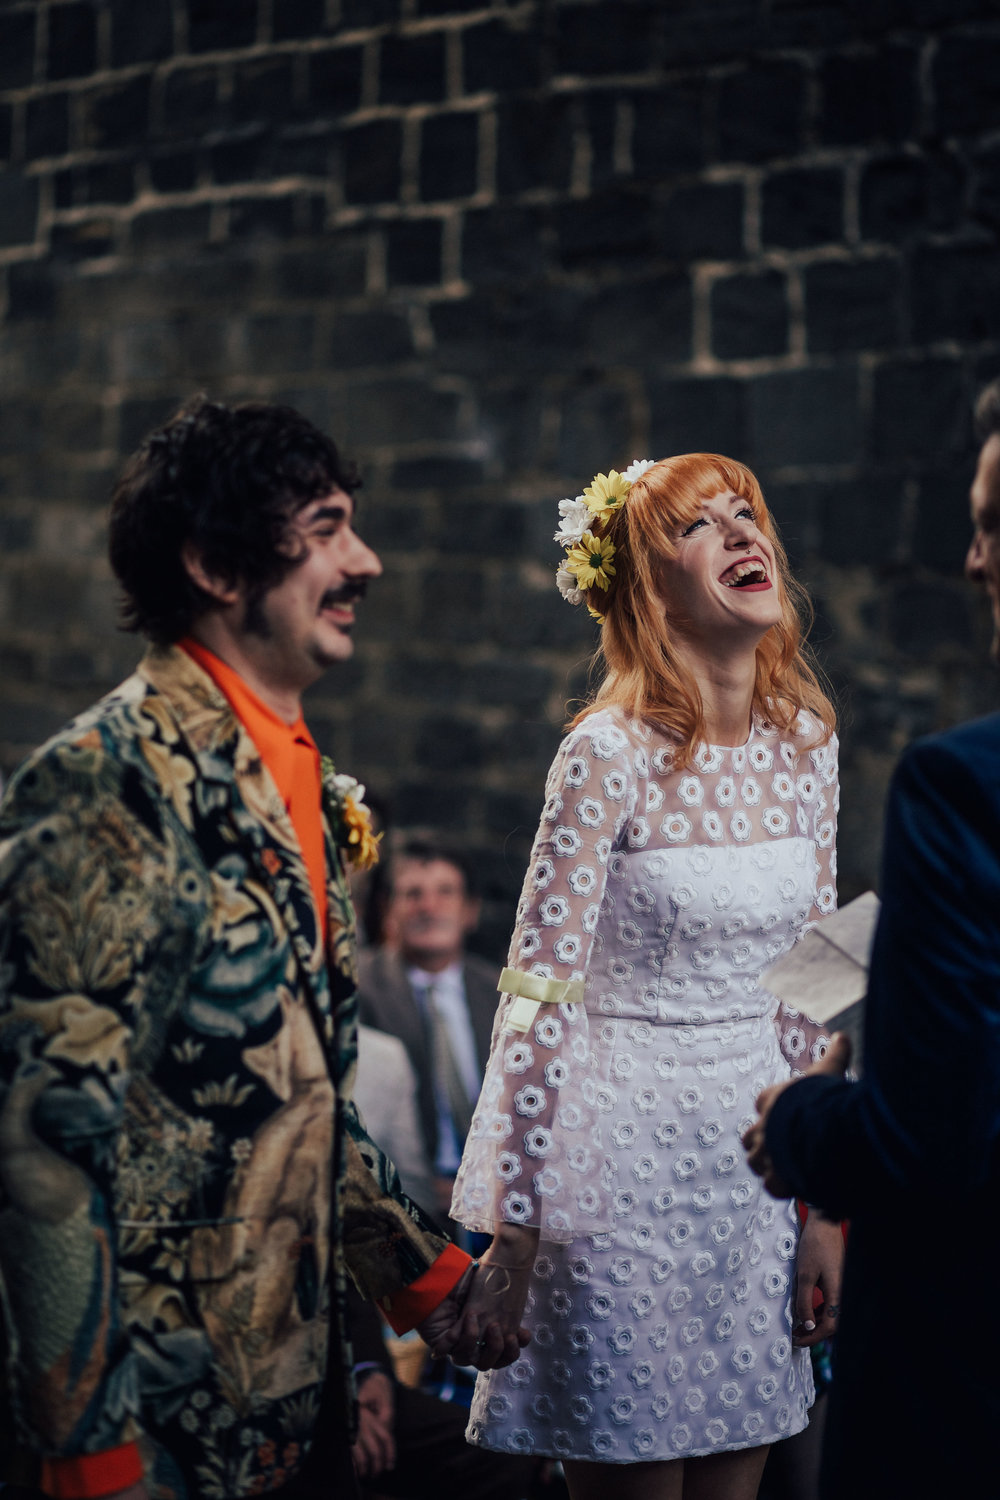 ALTERNATIVE_WEDDING_PHOTOGRAPHY_LEEDS_UK_PJ_PHILLIPS_PHOTOGRAPHY_69.jpg